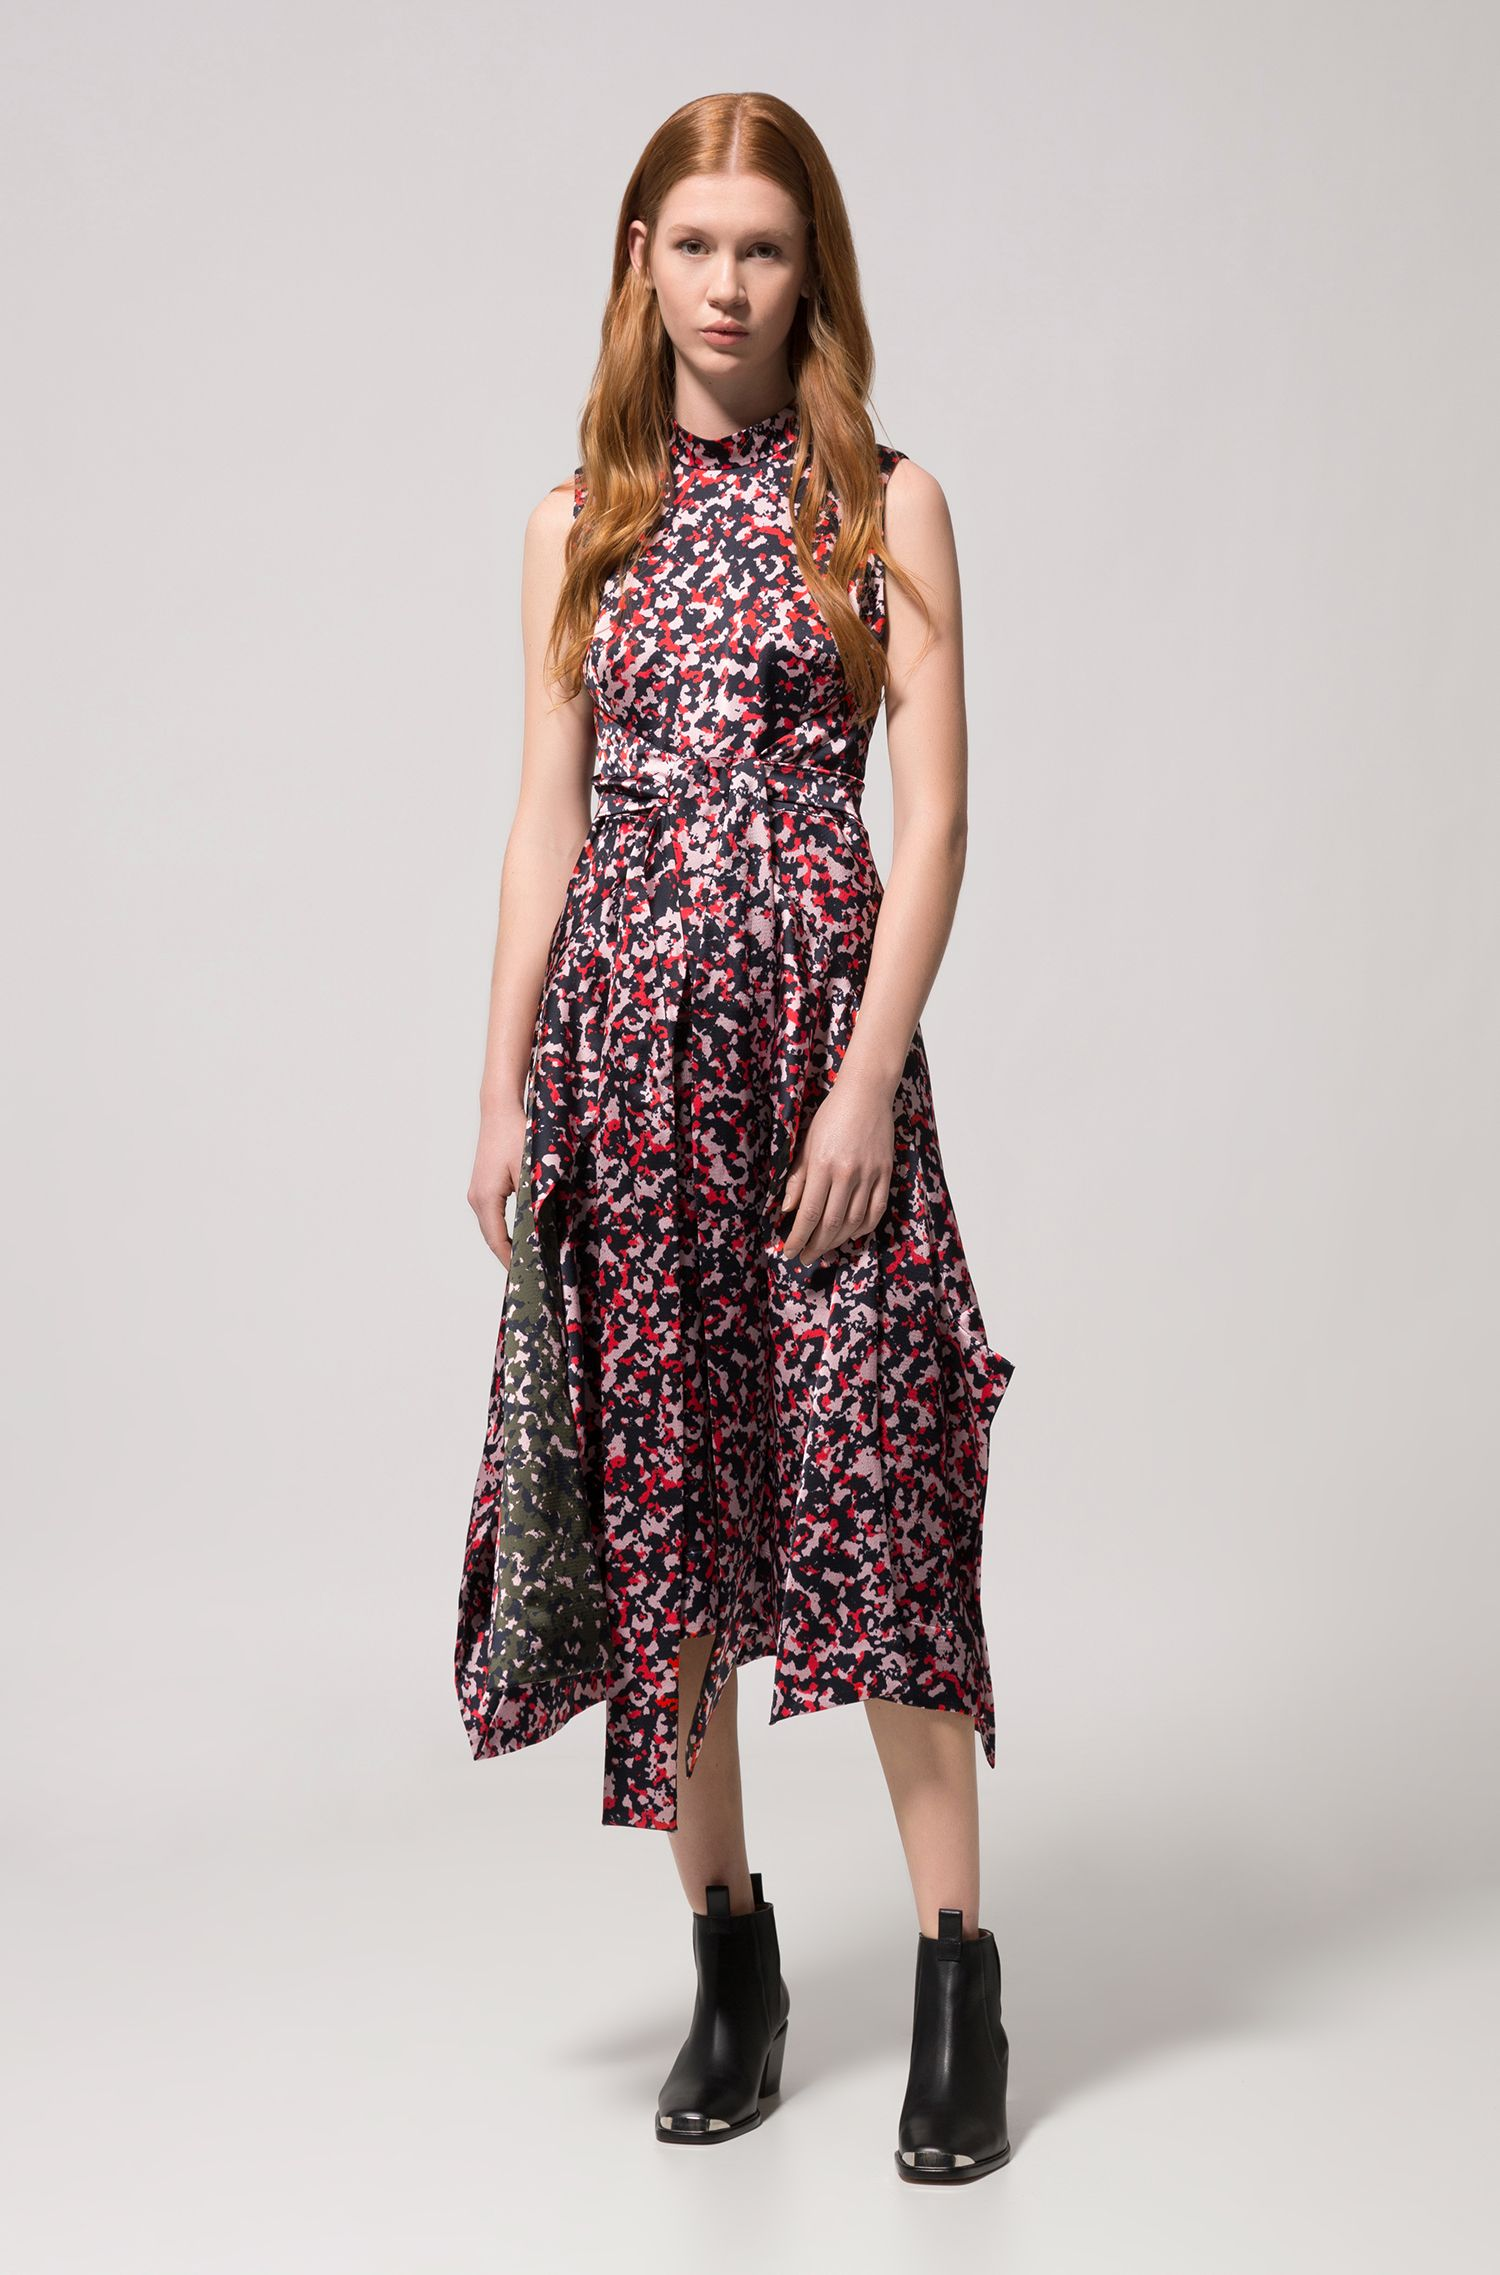 Midi-length dress in camouflage print with knot detail